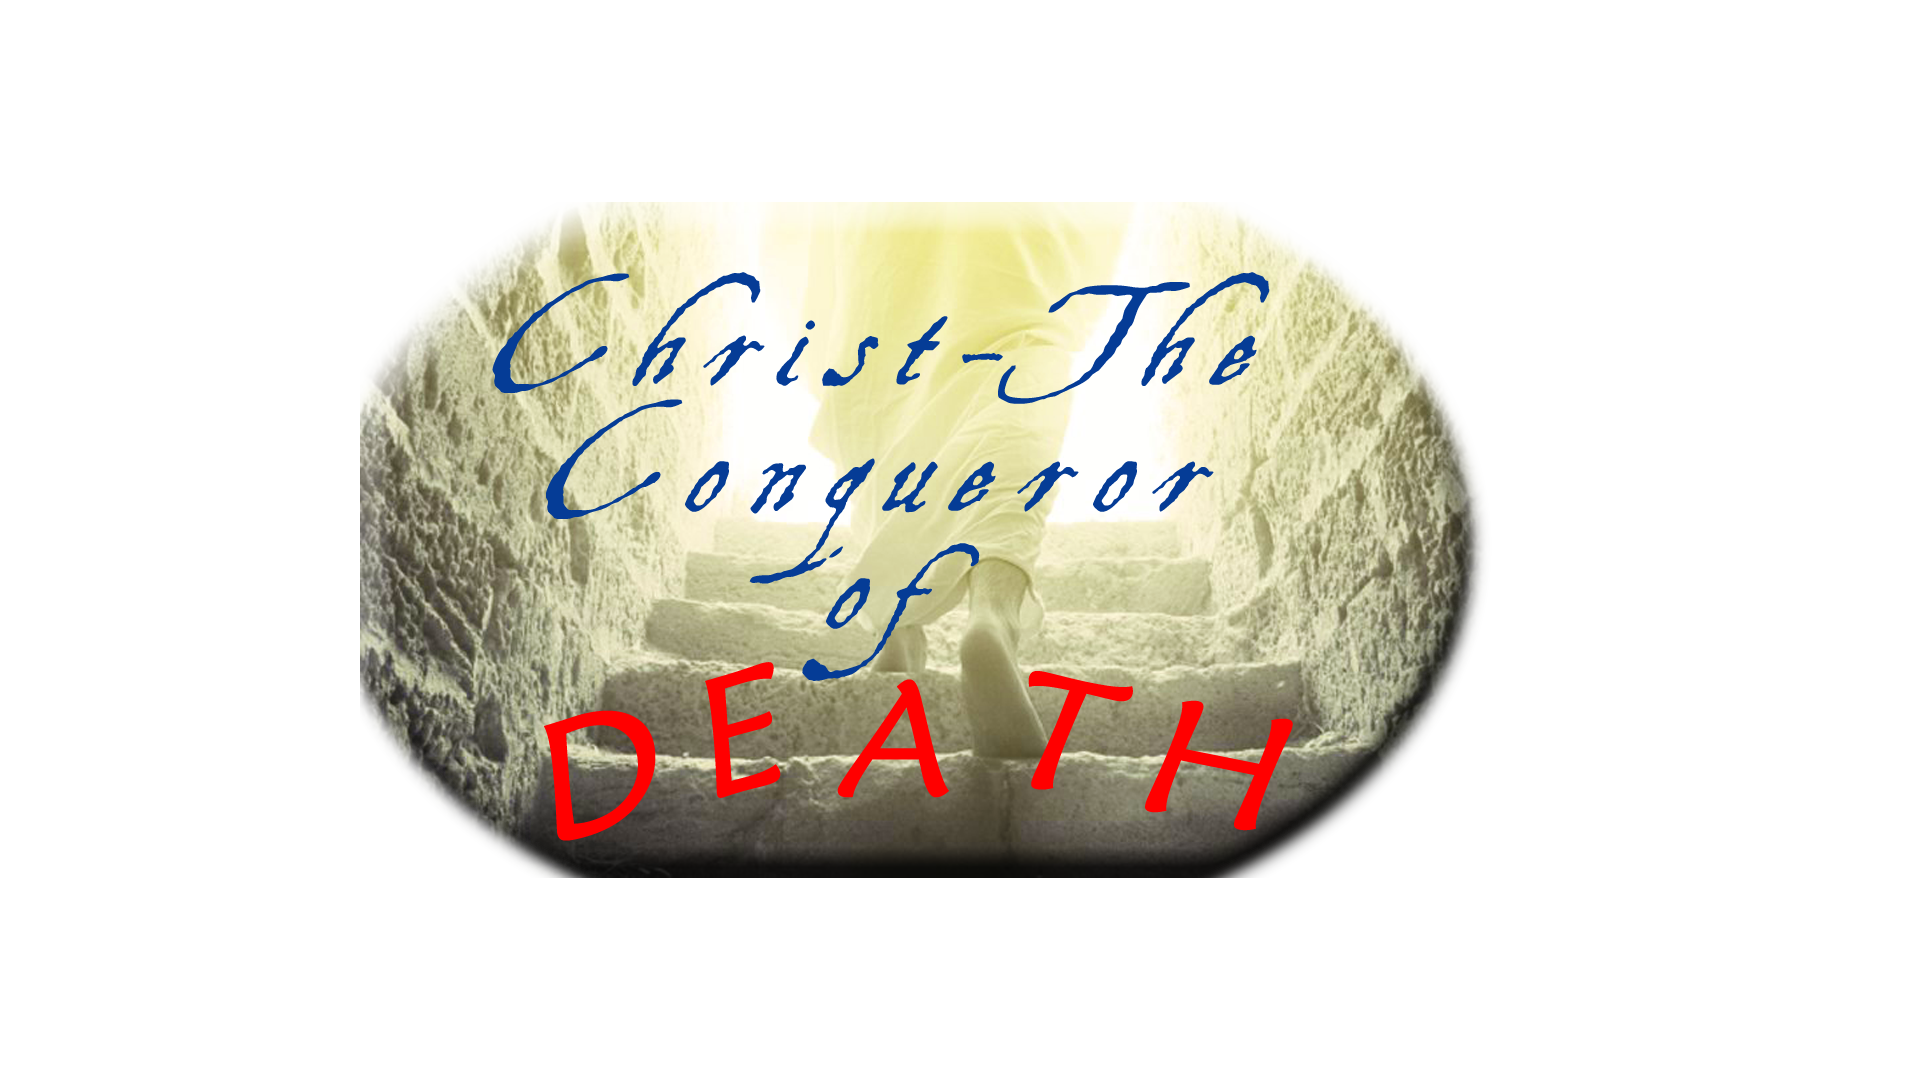 CHRIST THE CONQUEROR OF DEATH (7-1-18)